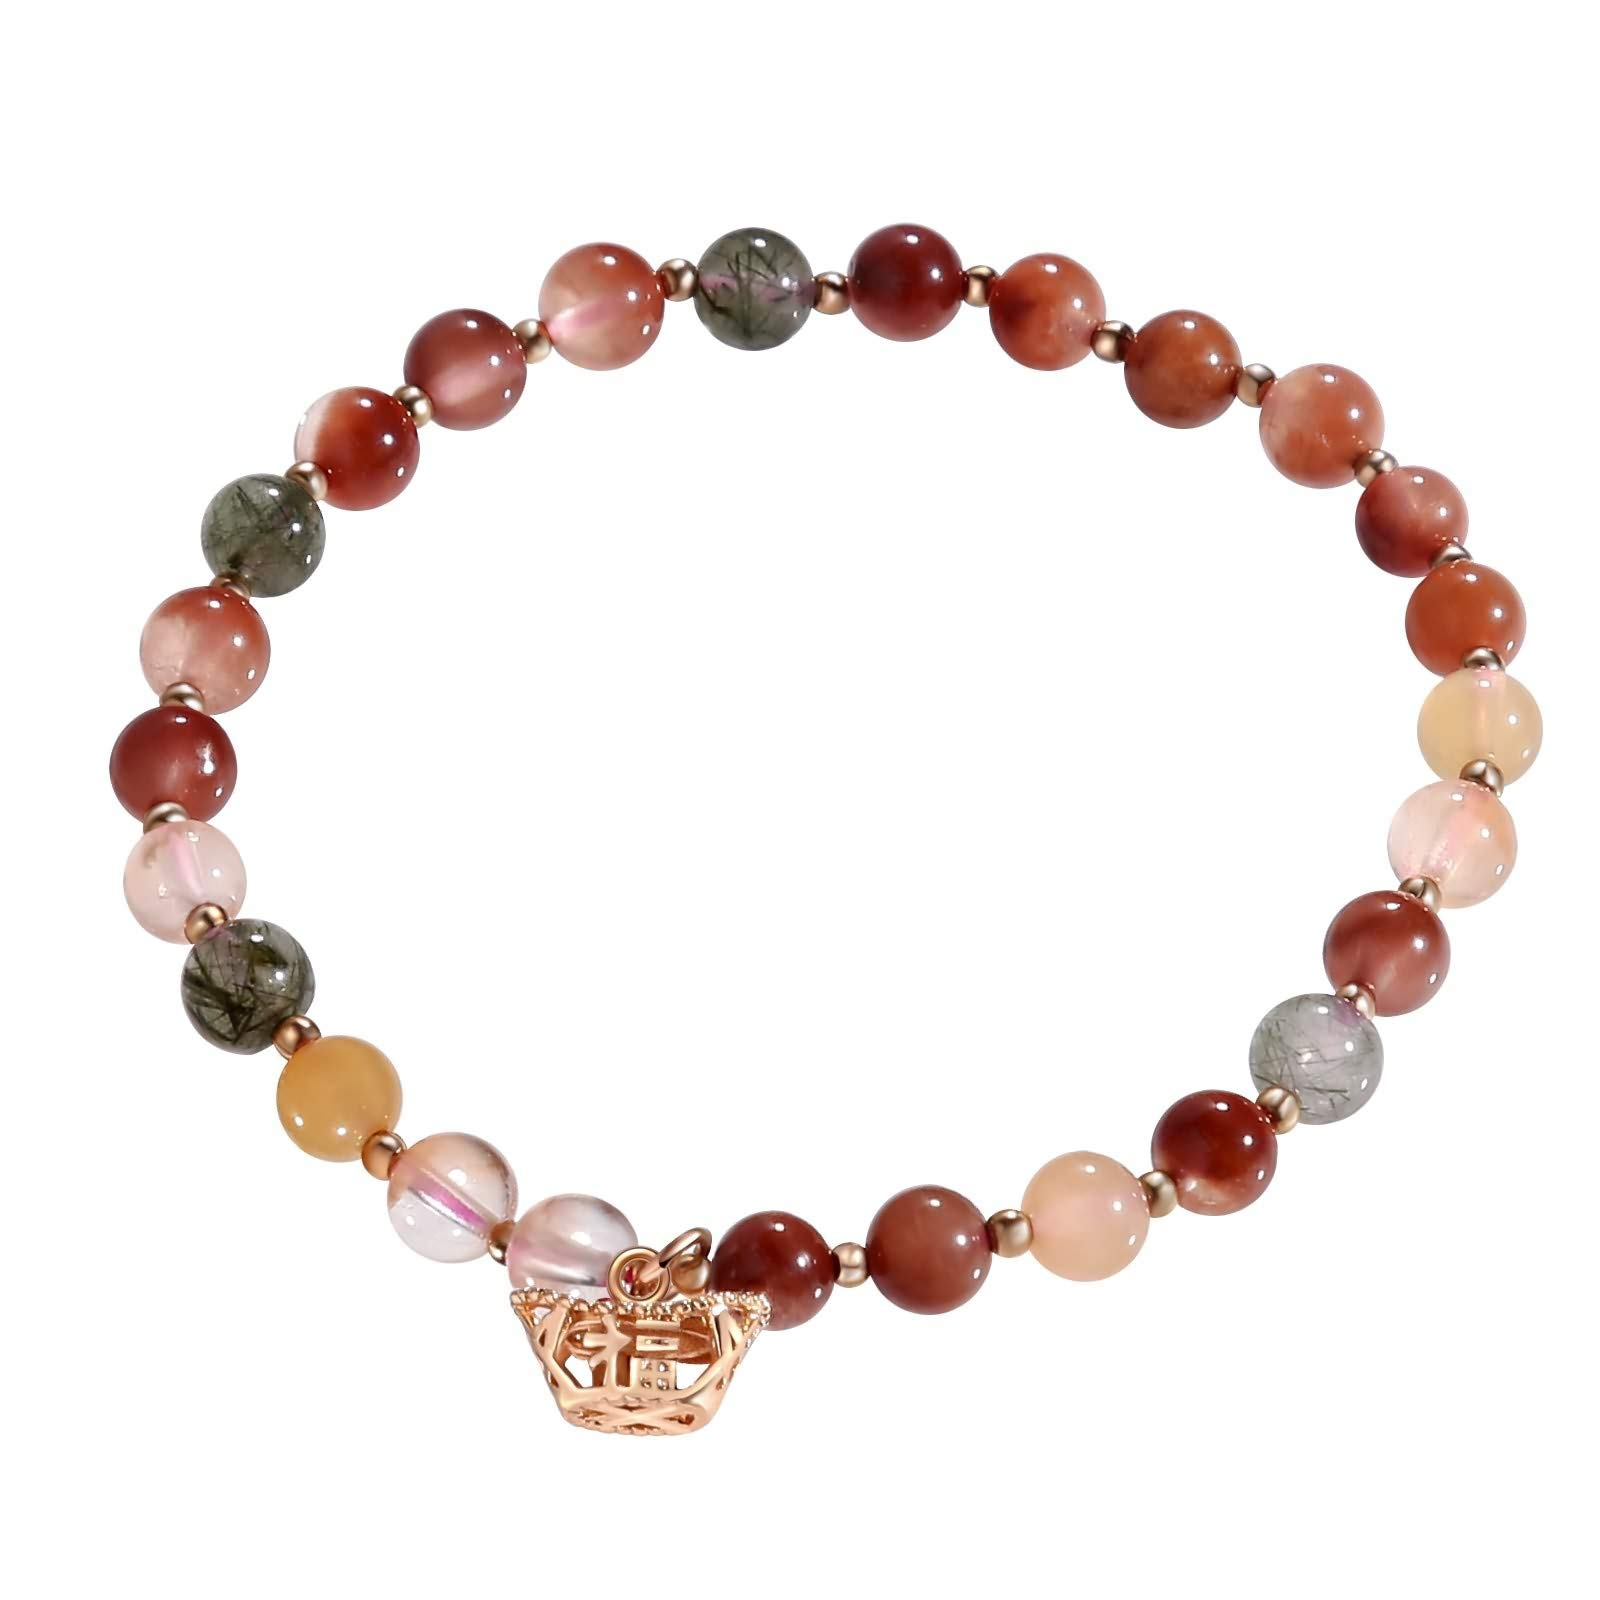 Beydodo Anklets with Colored Stones Beach Foot Jewelry Wedding Multicolor Beads with Charms